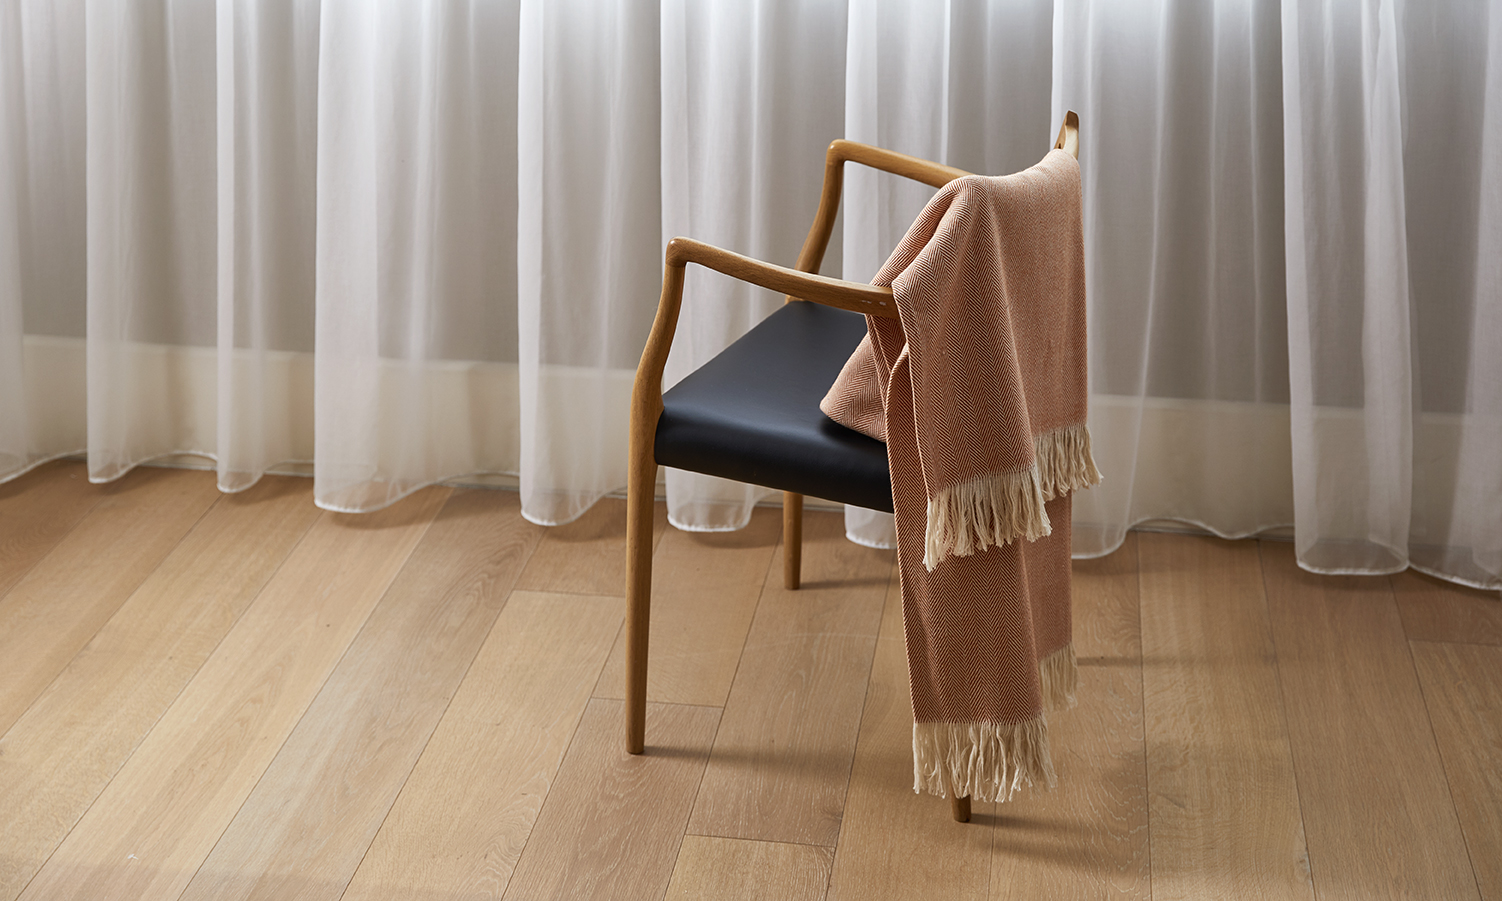 Throws  Simple, velvety soft, and ultra luxurious throws blankets from Revival New York are produced with only the finest materials.   Learn More...